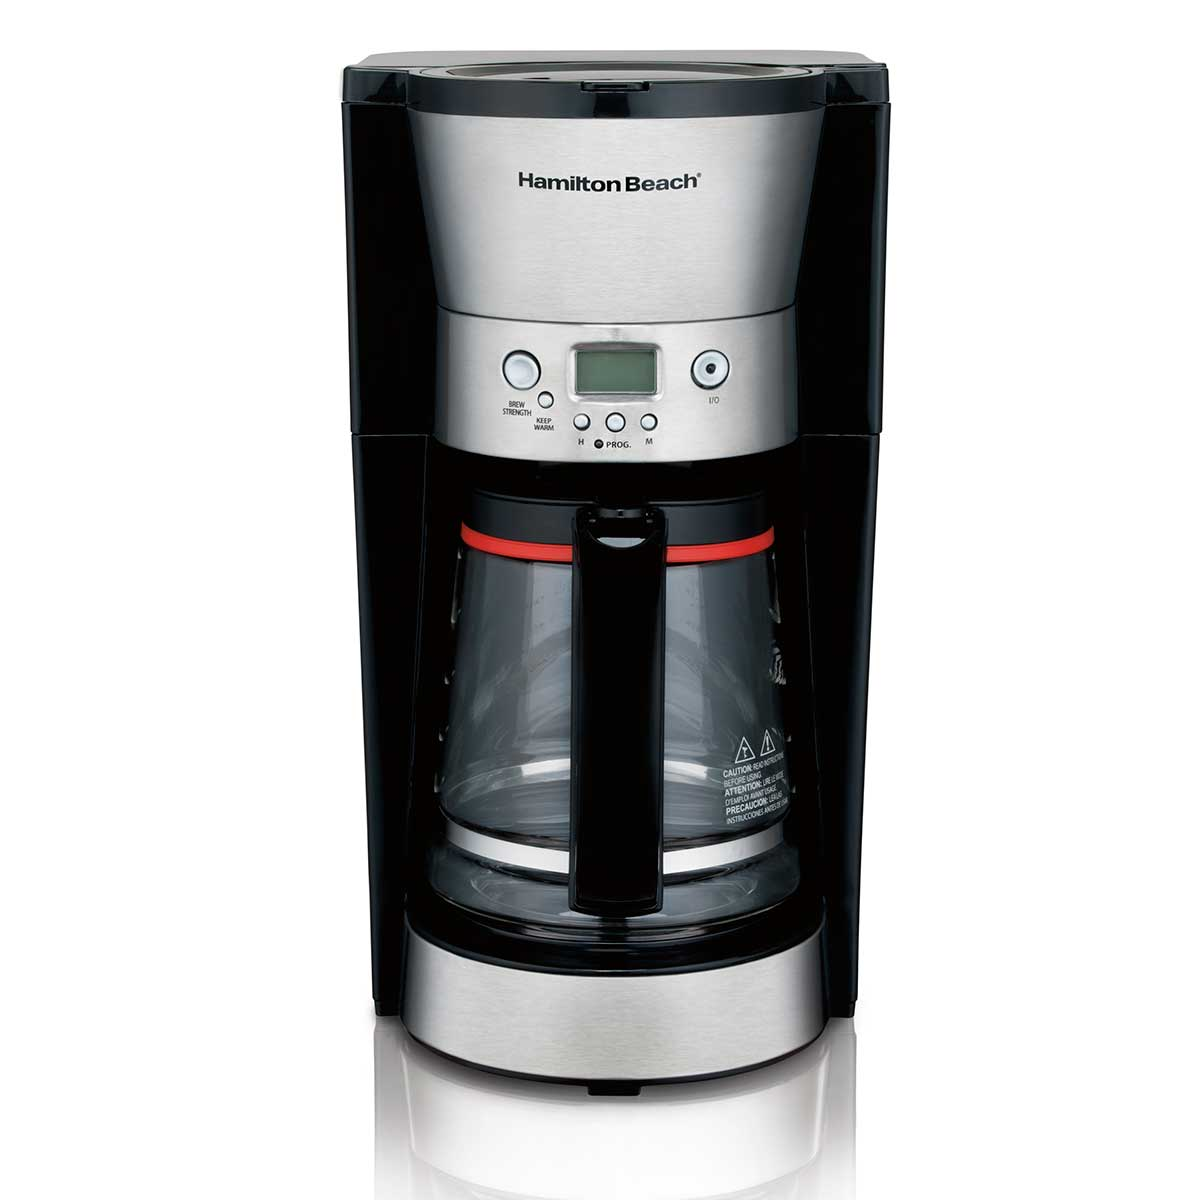 12-Cup Programmable Coffee Maker with Cone Filter, Black & Stainless (46895)